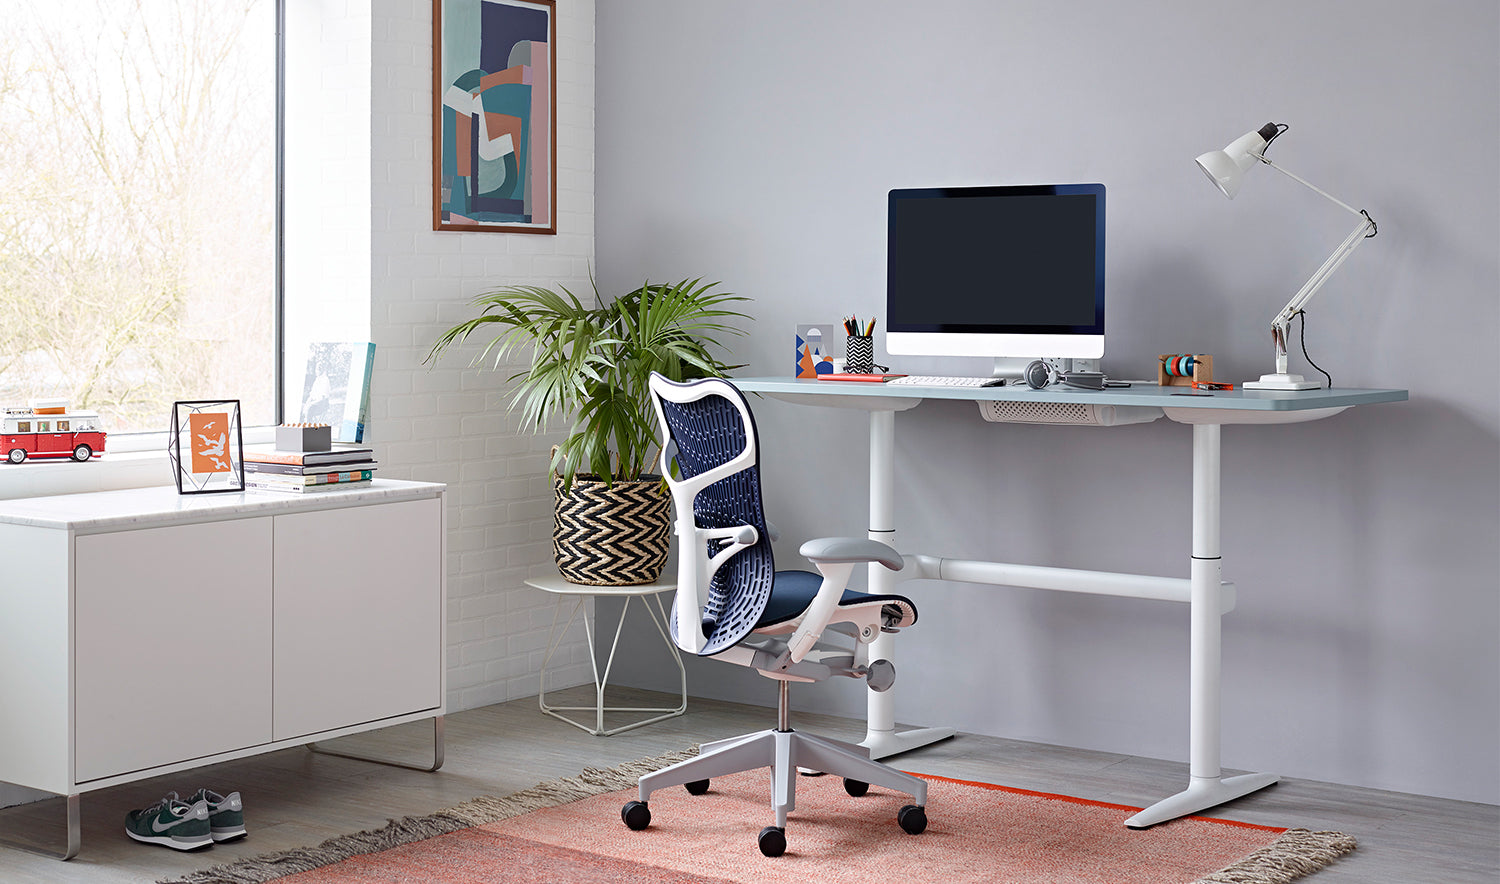 White and twilight Mirra 2 chair in a home office environment.